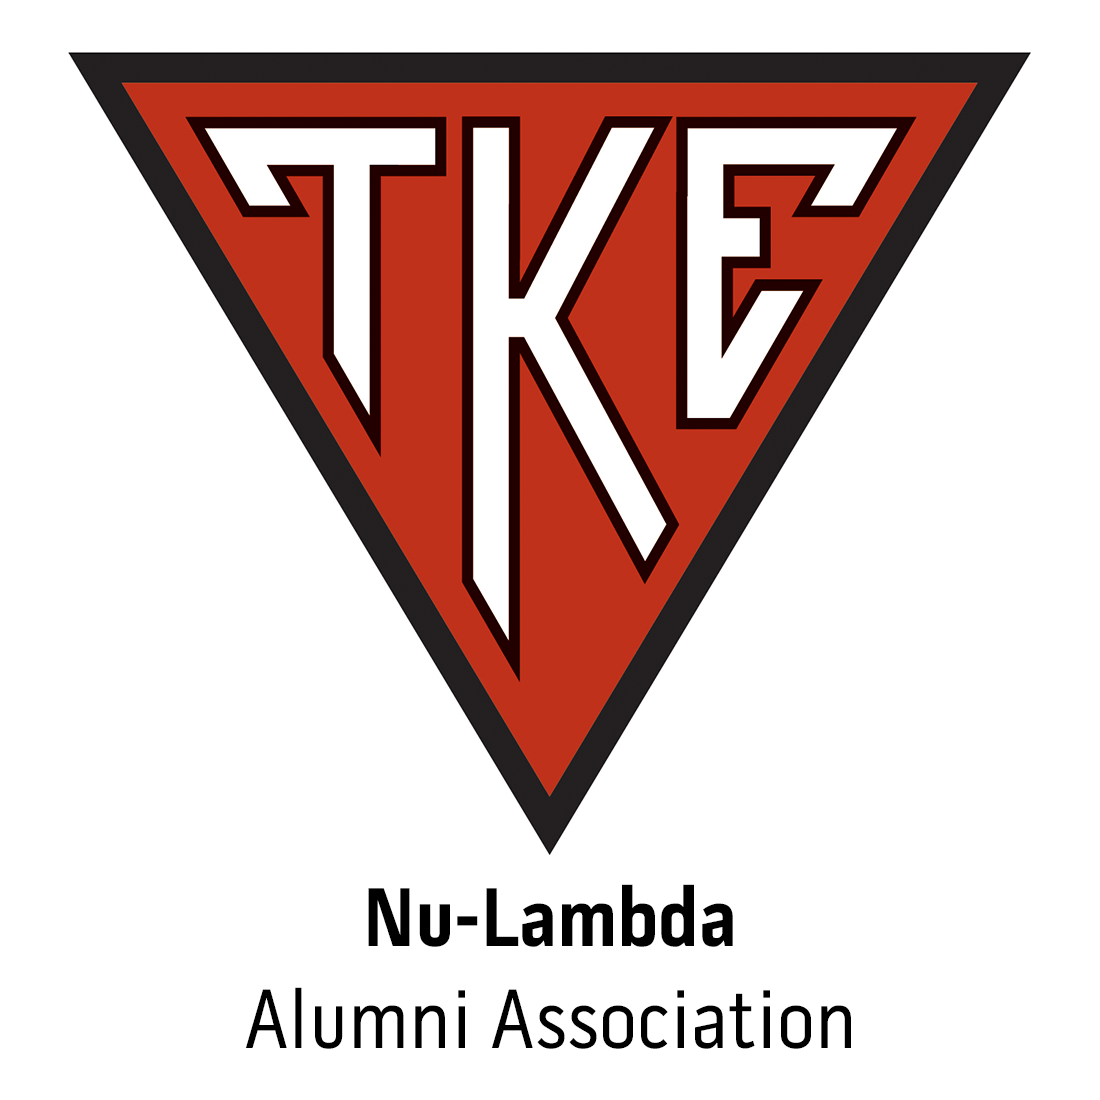 Nu-Lambda Alumni Association at University of Southern Indiana